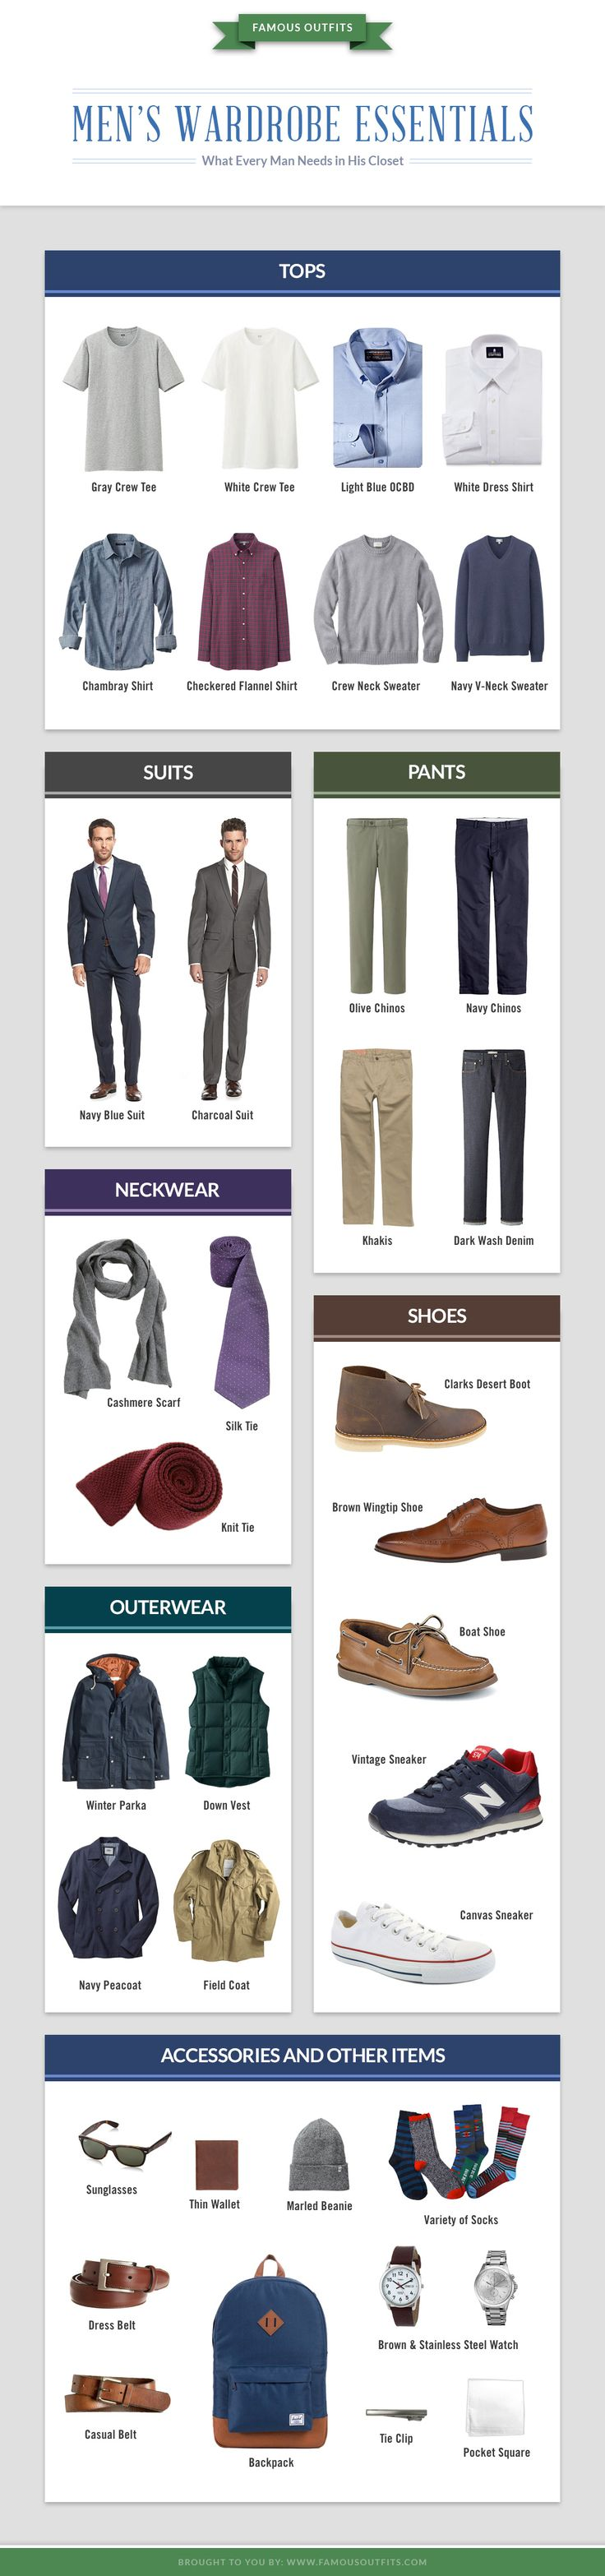 best 25 mens wardrobe essentials ideas on